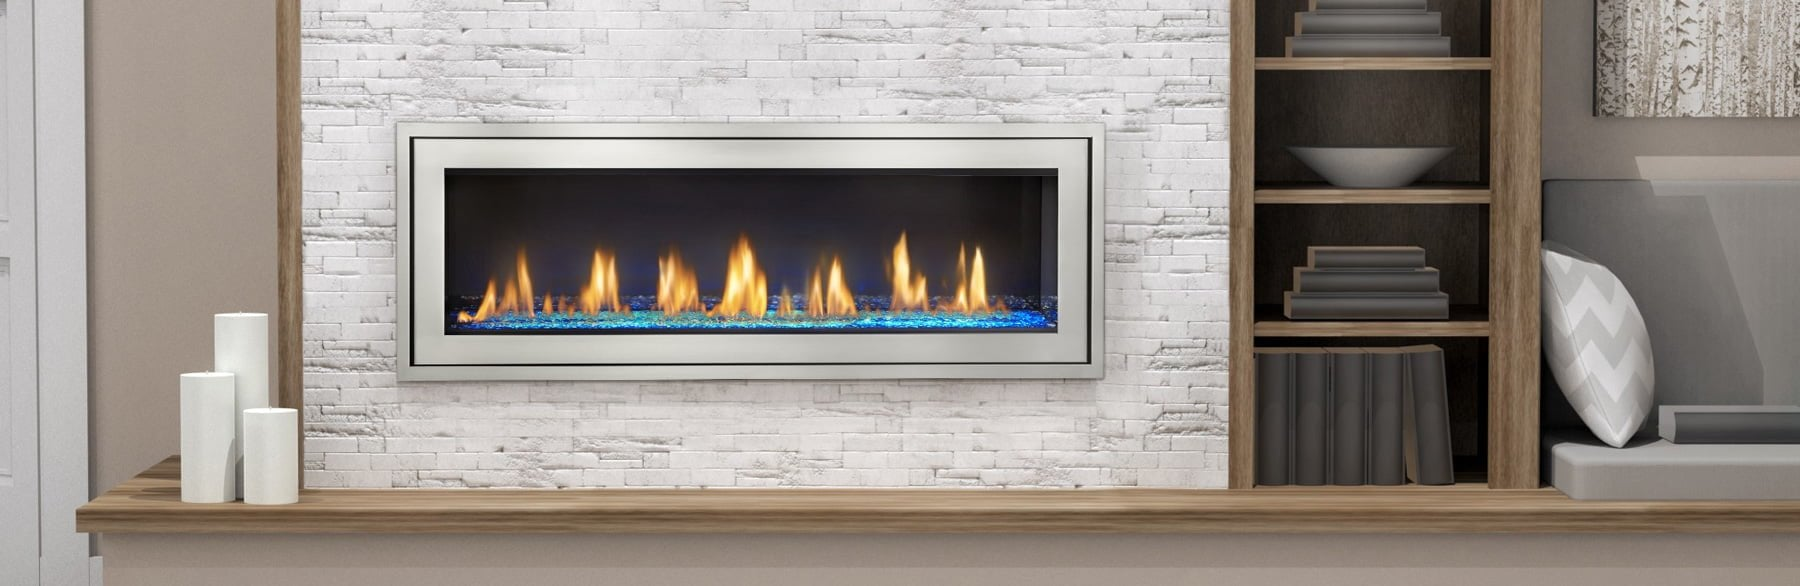 Utah S Fireplace Experts Comfort Solutions